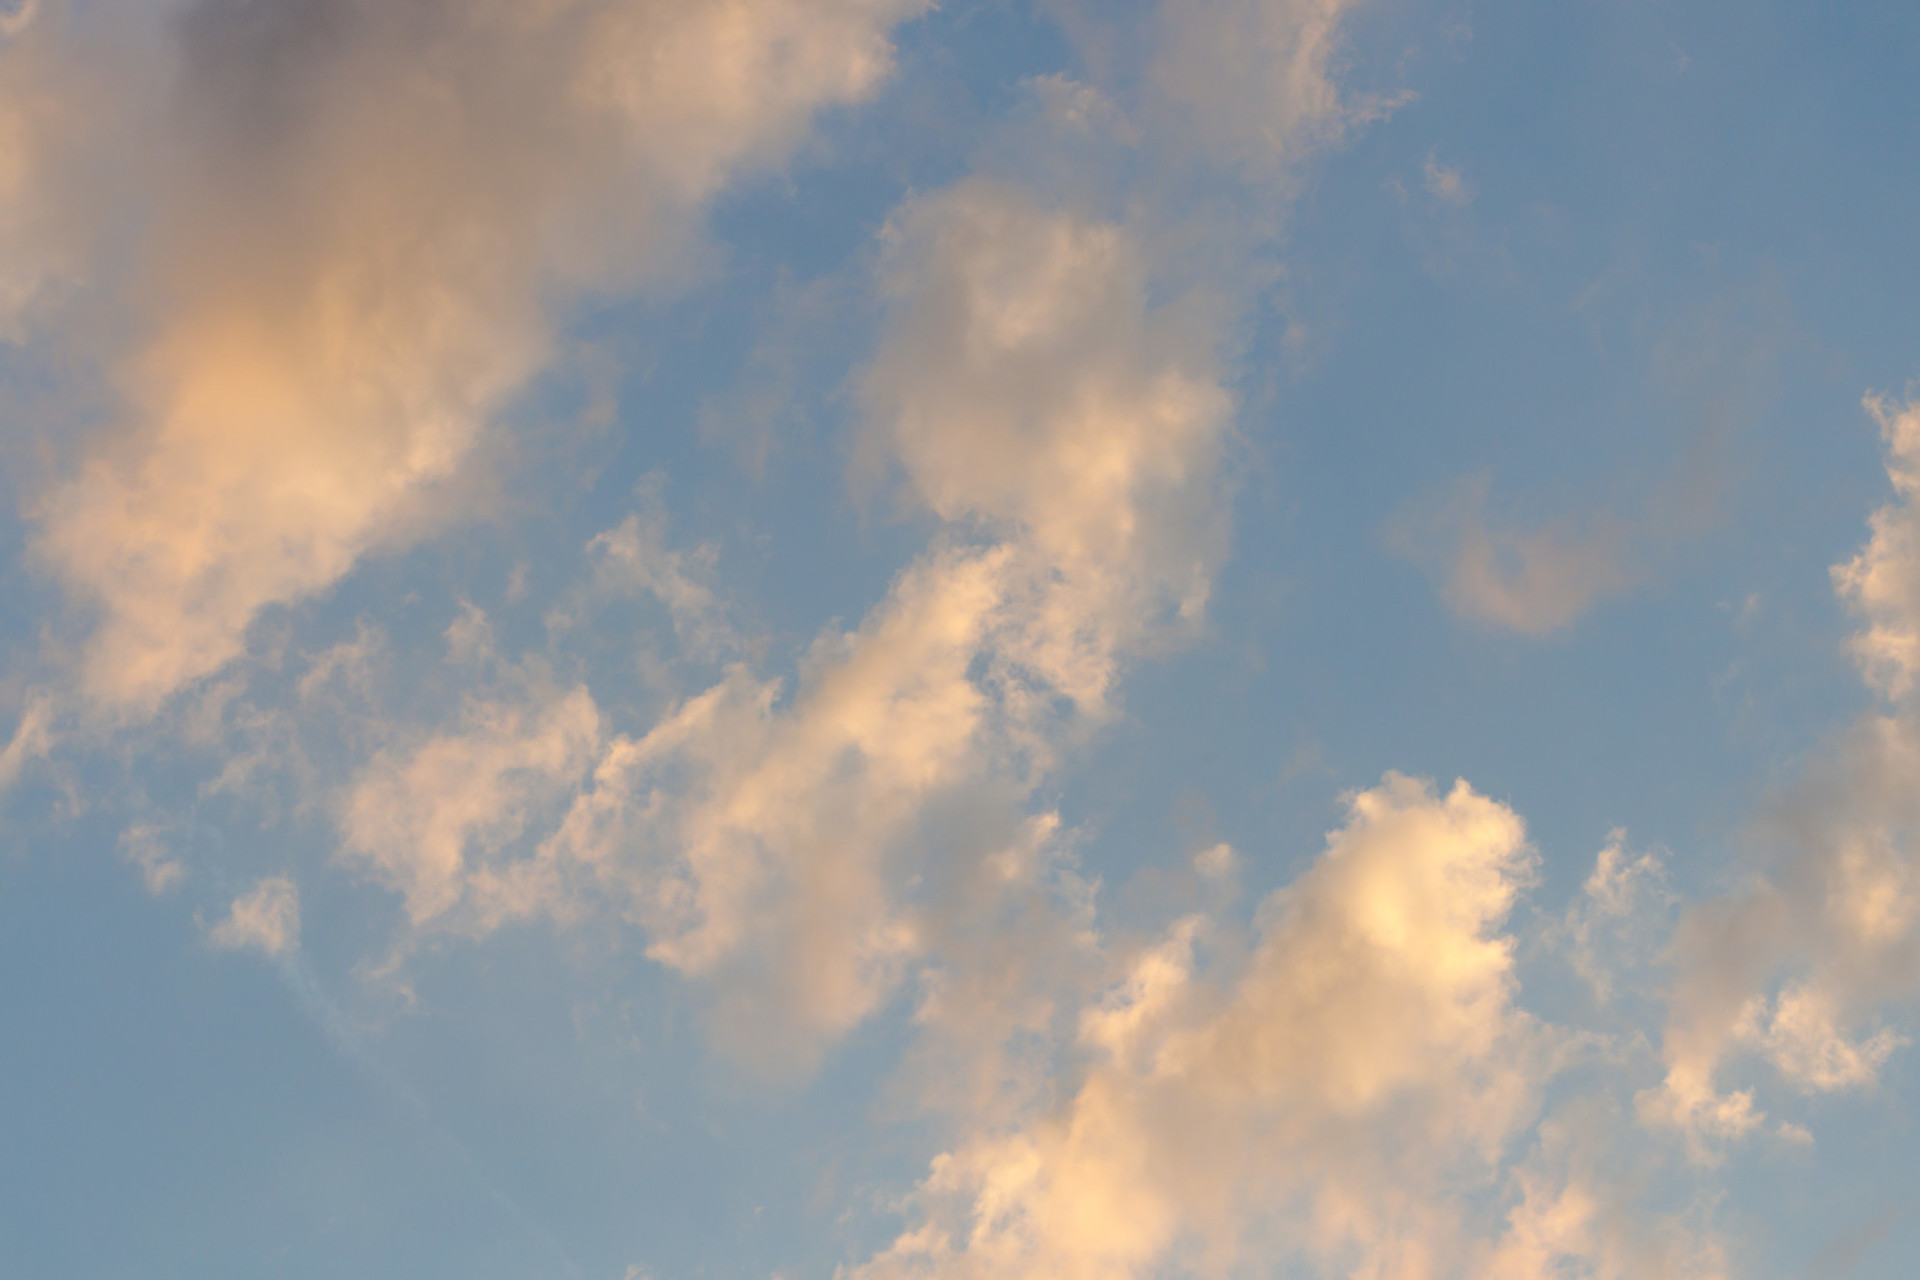 Horizontally photographed sky at evening time